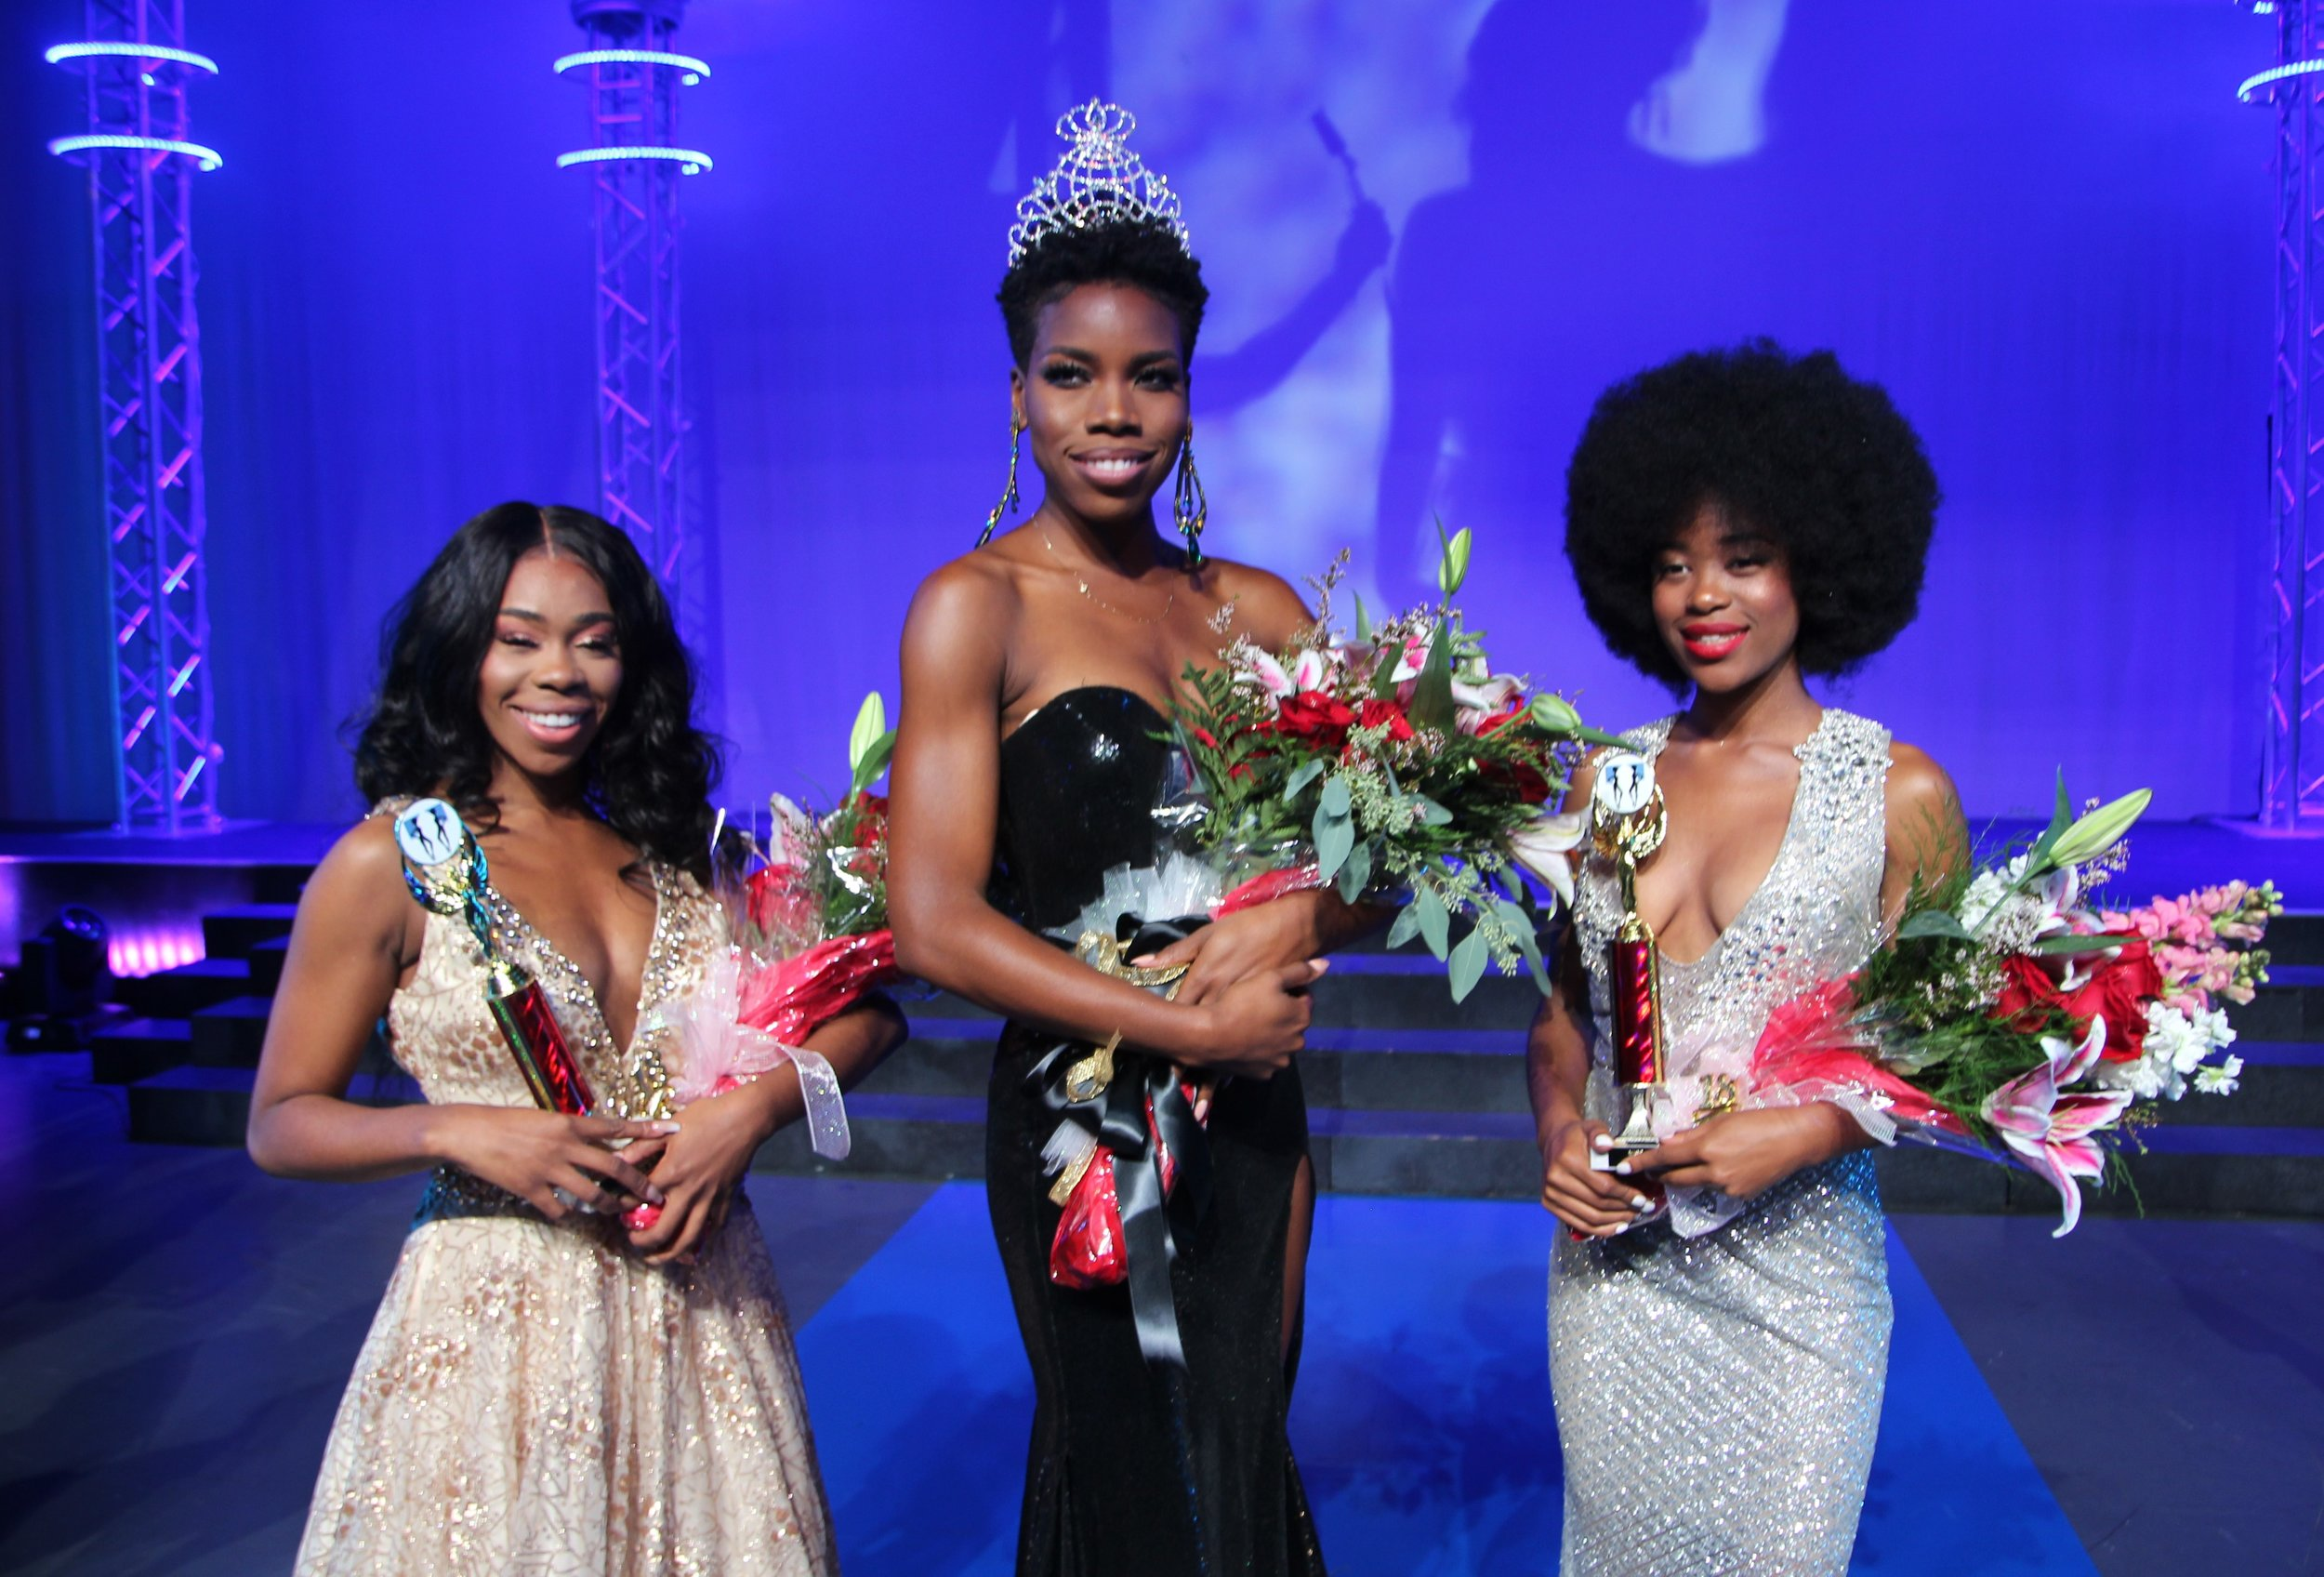 Miss Black America 2018 Runners Up and WInner Ryan Richardson wearing ASE Beauty Lipstick